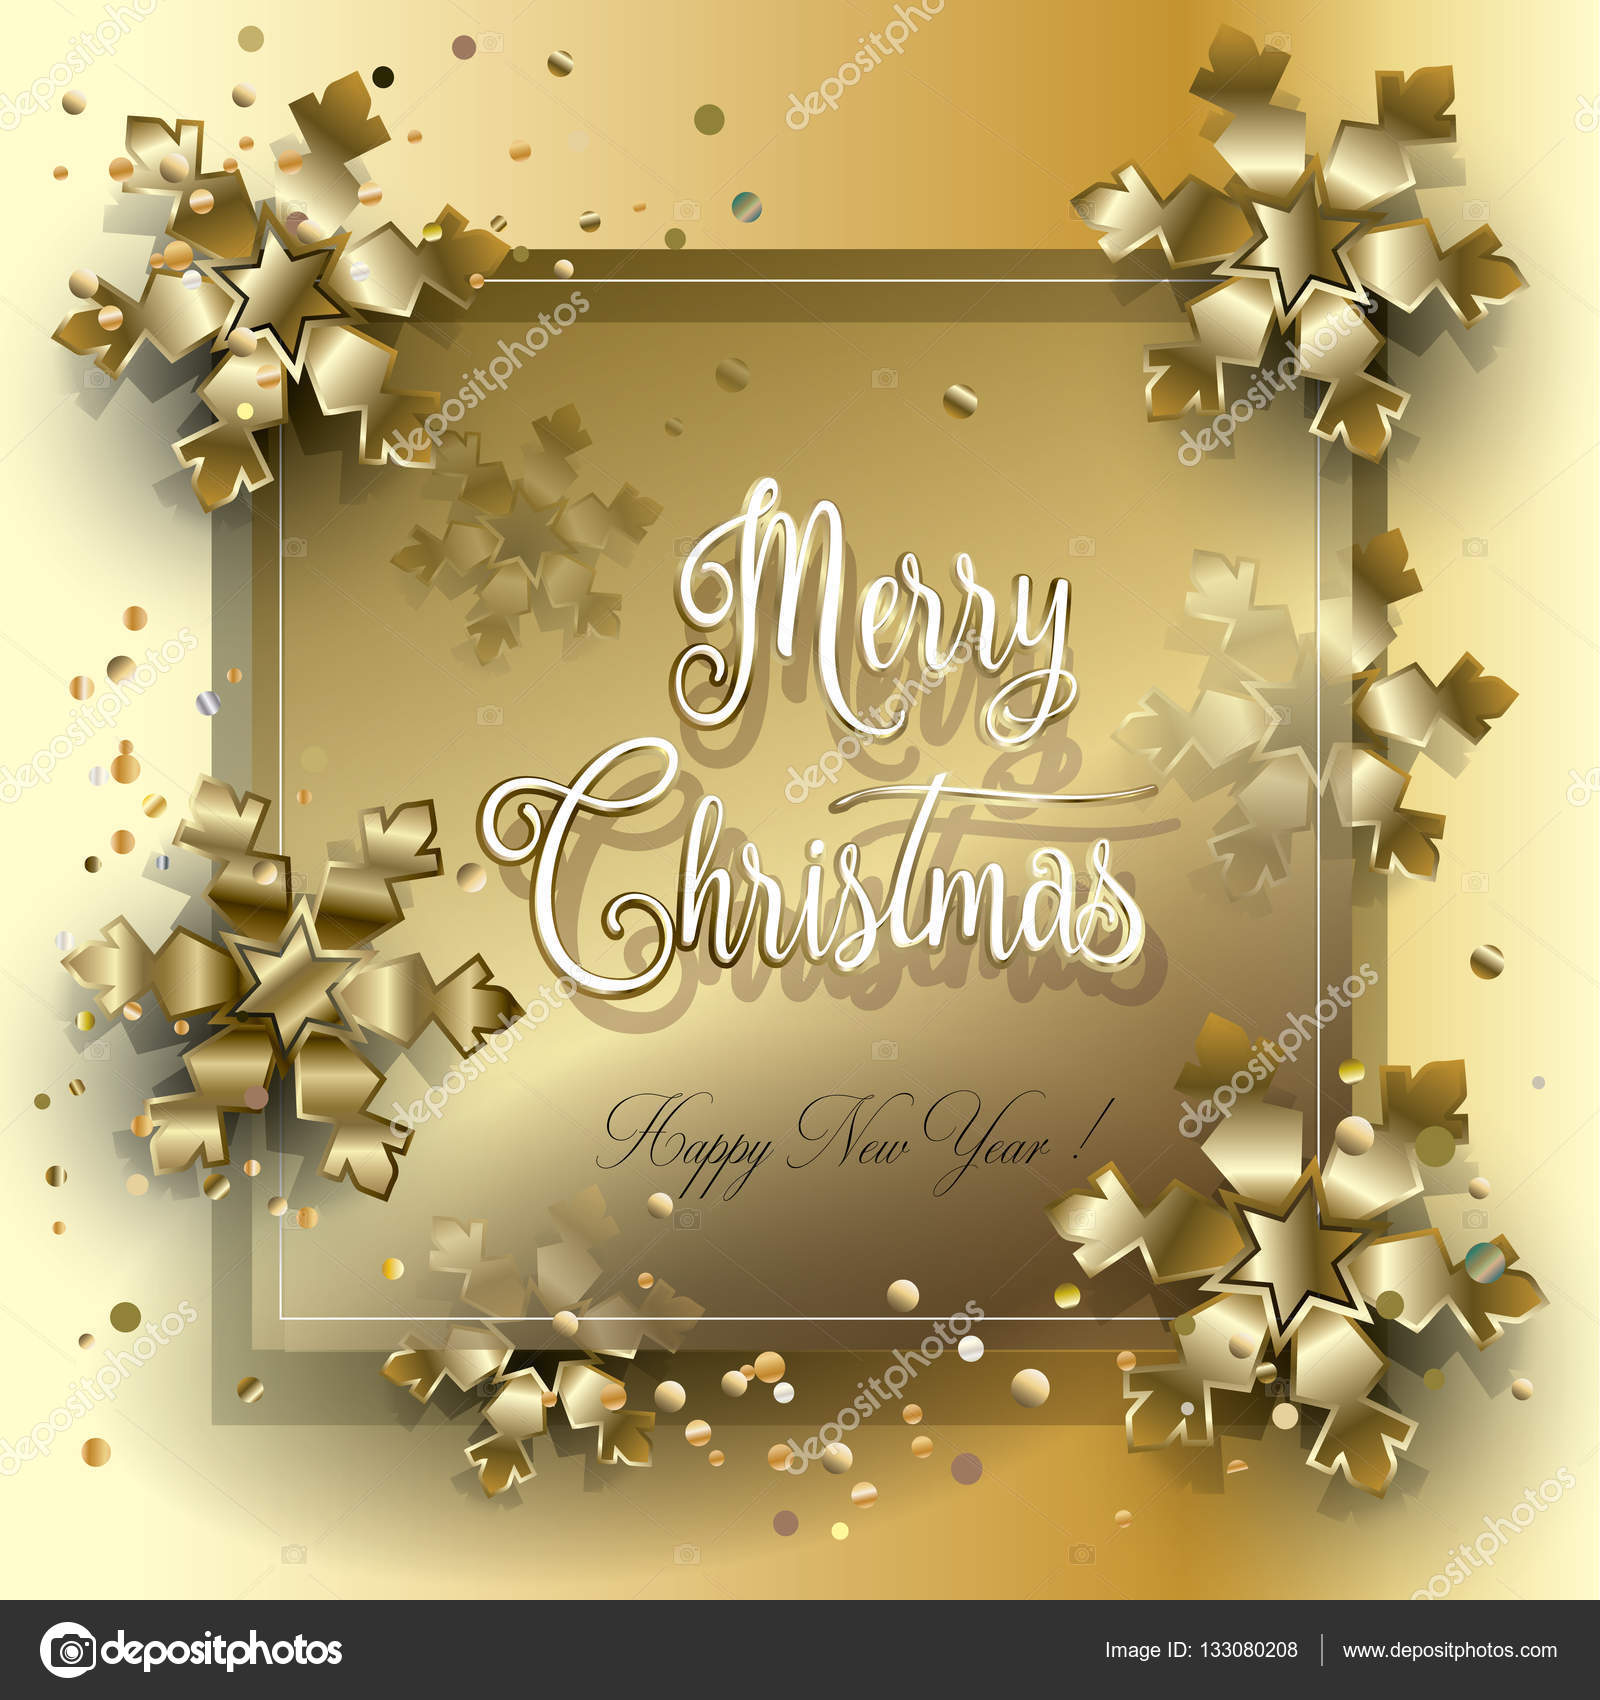 merry christmas and happy new year greeting card with glitter balls fir tree fall snow sparkle gold snowflakes confetti